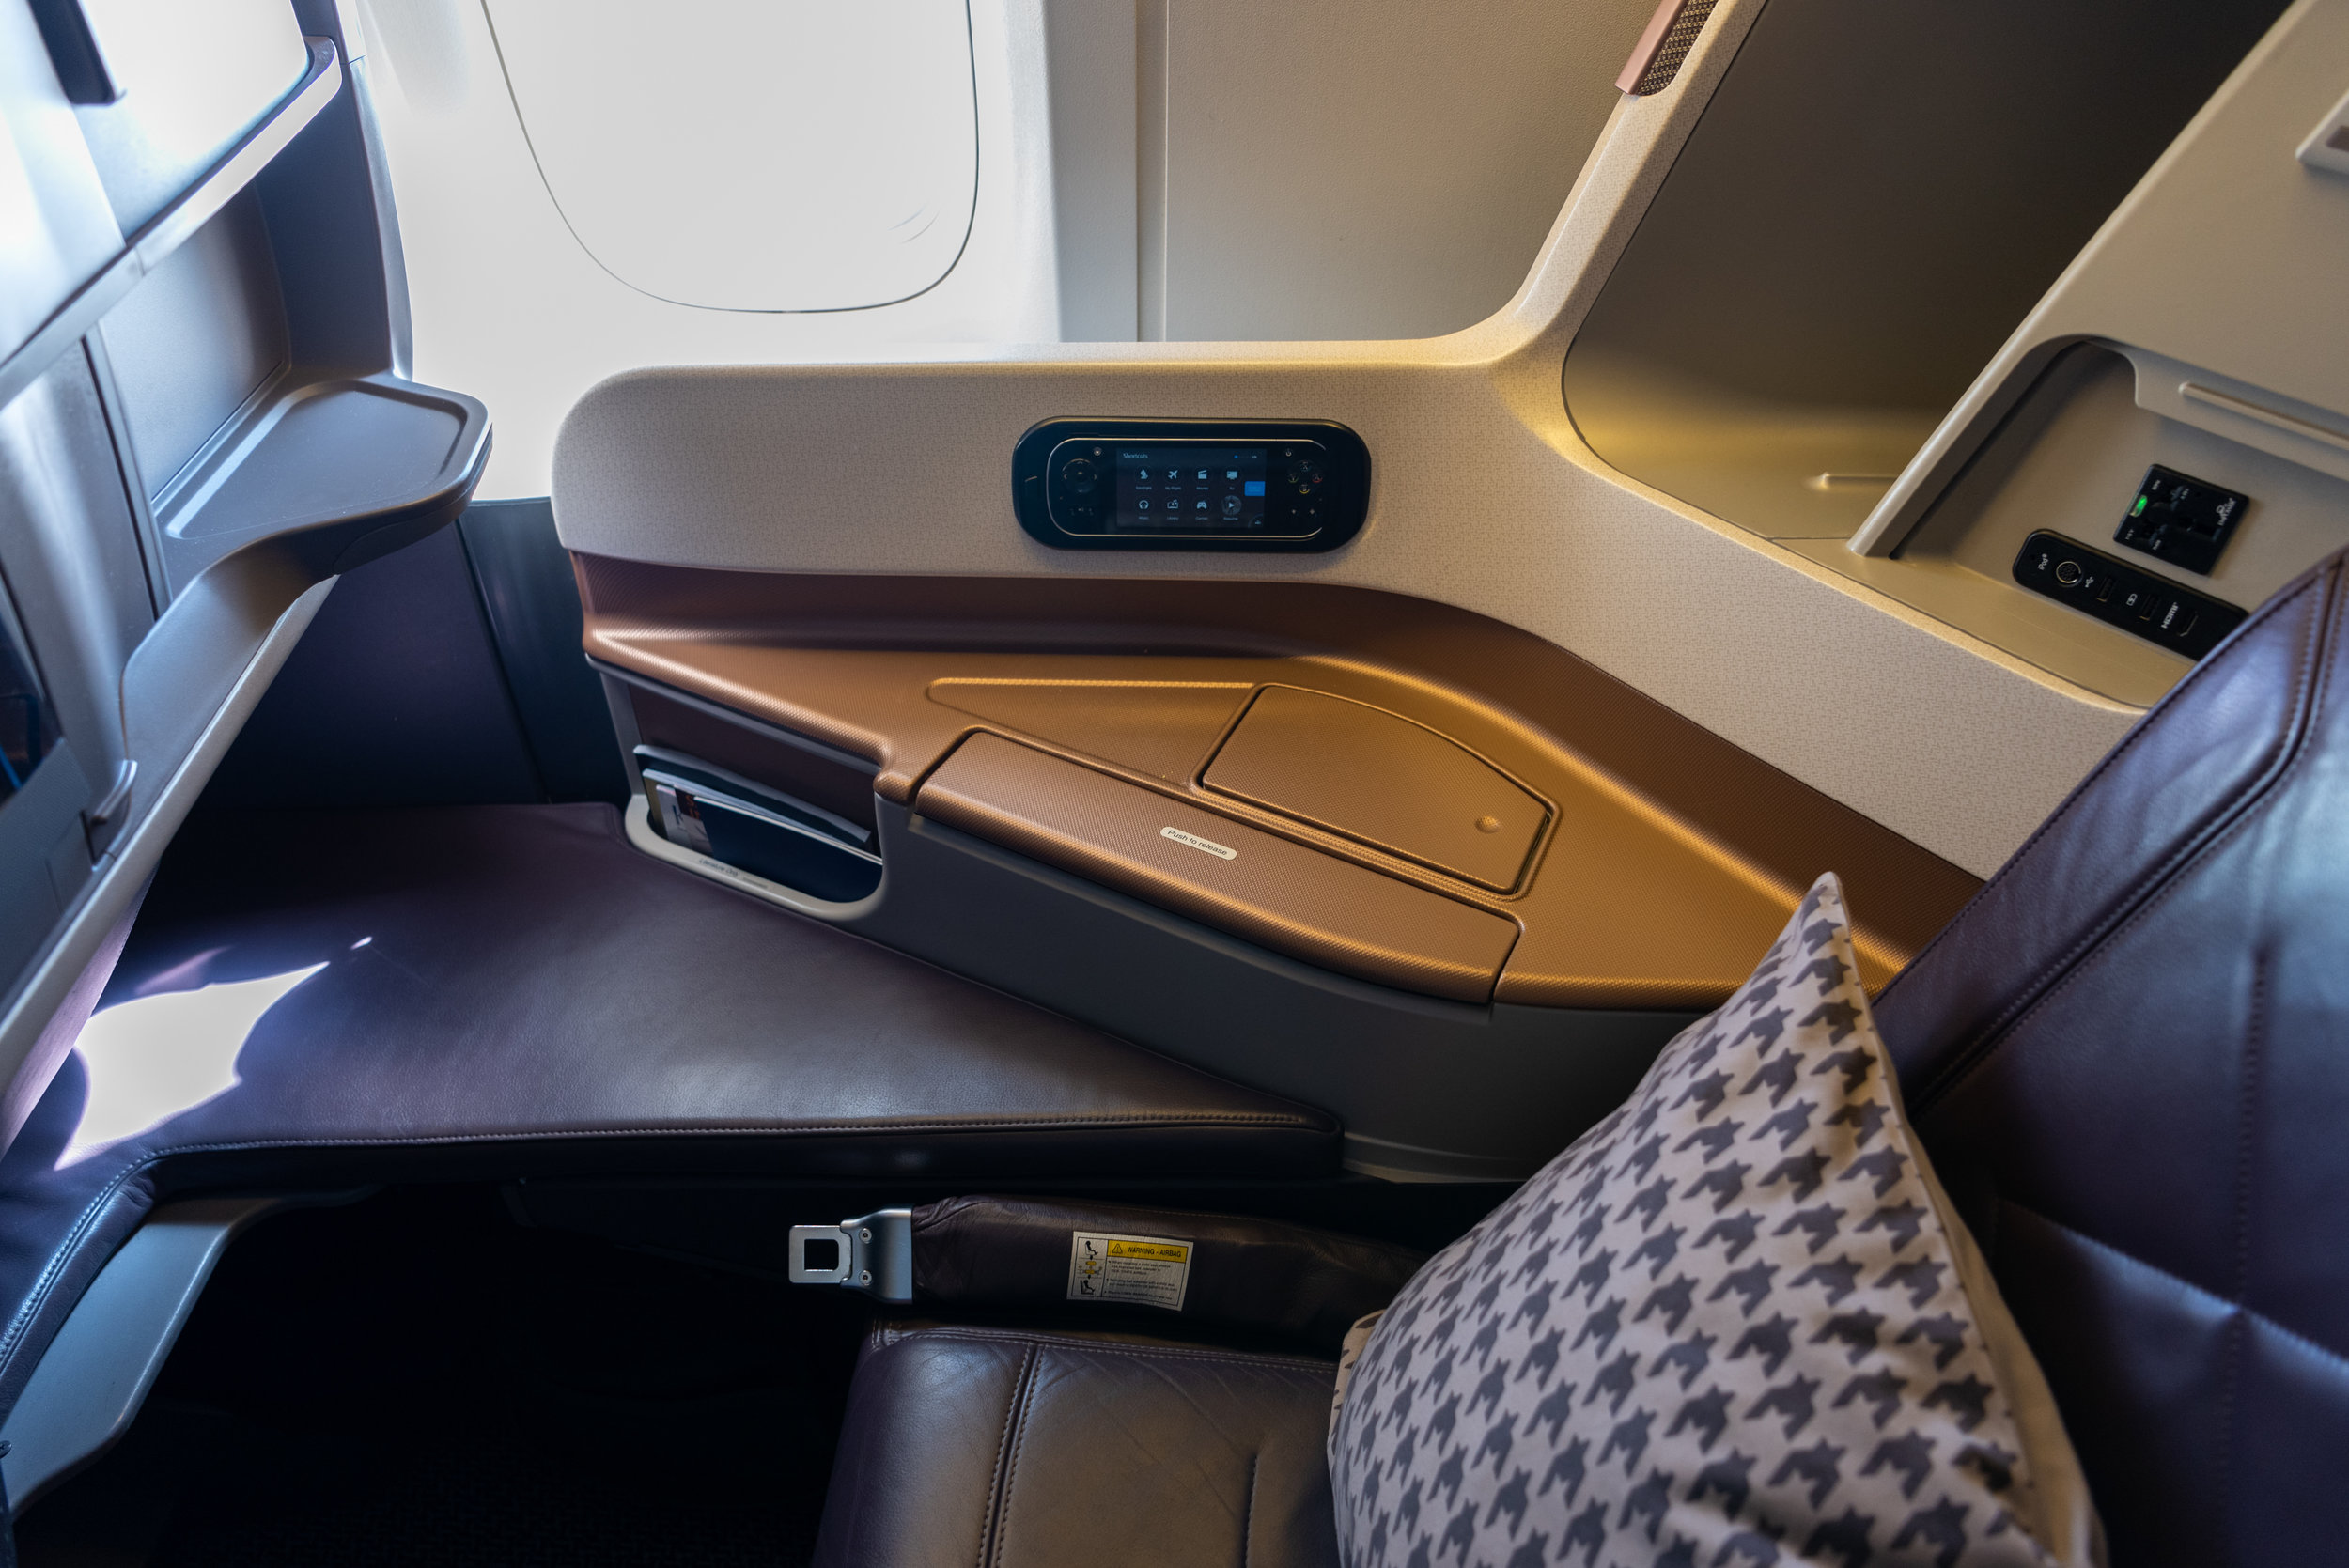 Singapore Airlines Business Class - SQ828 (SIN-PVG)